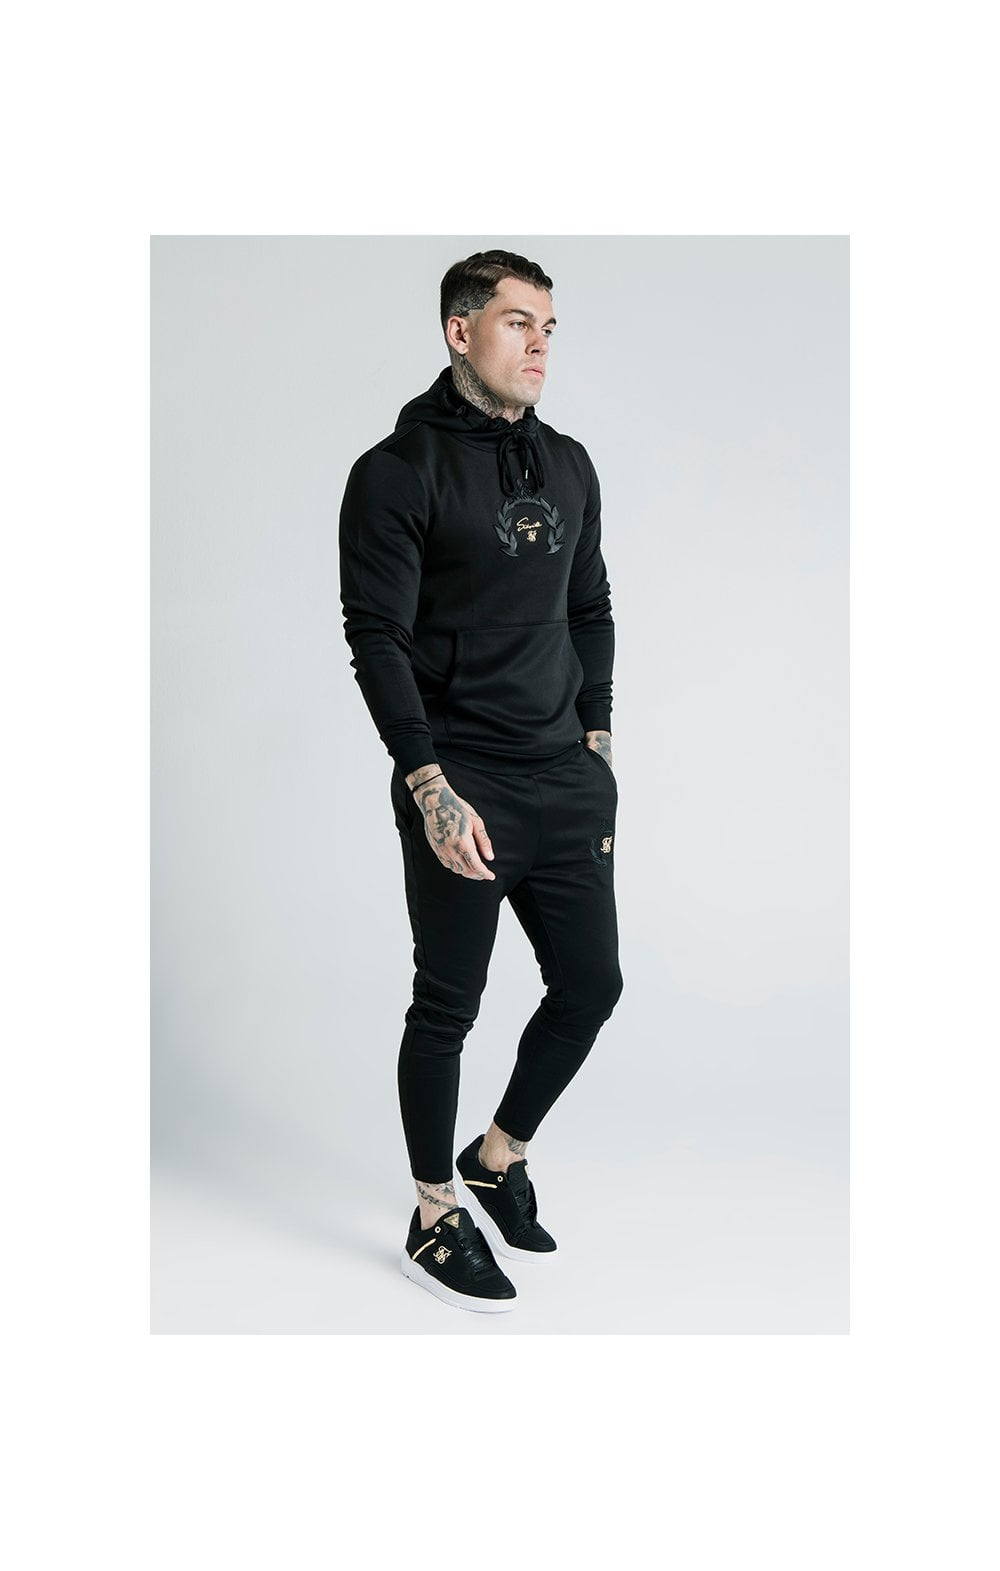 Load image into Gallery viewer, SikSilk x Dani Alves Muscle Fit Overhead Hoodie – Black (1)